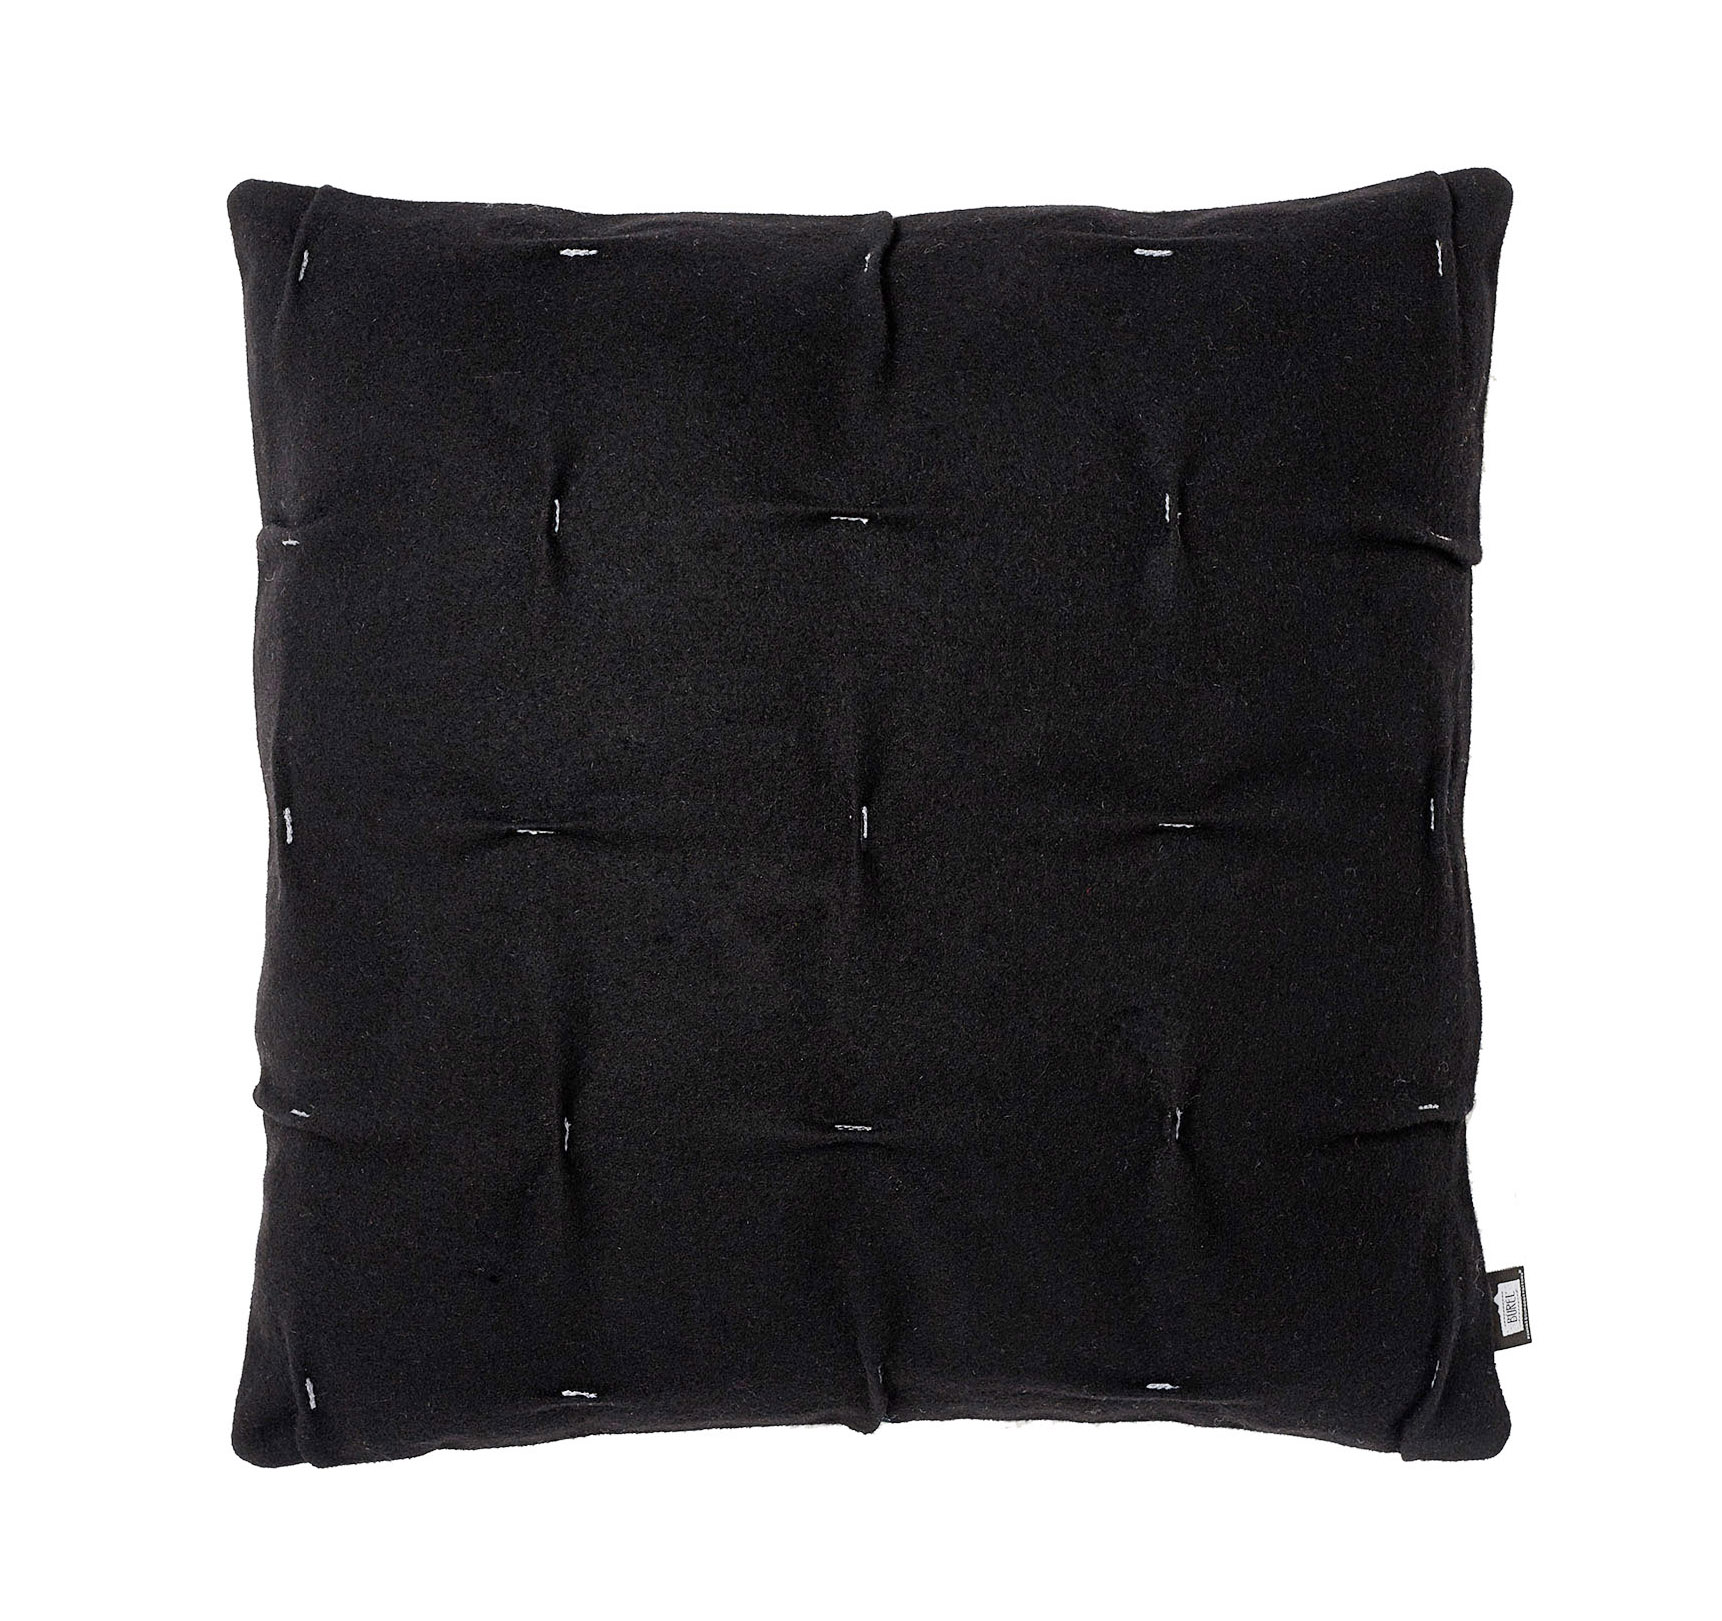 black+cruz+cushion+small copy.jpg